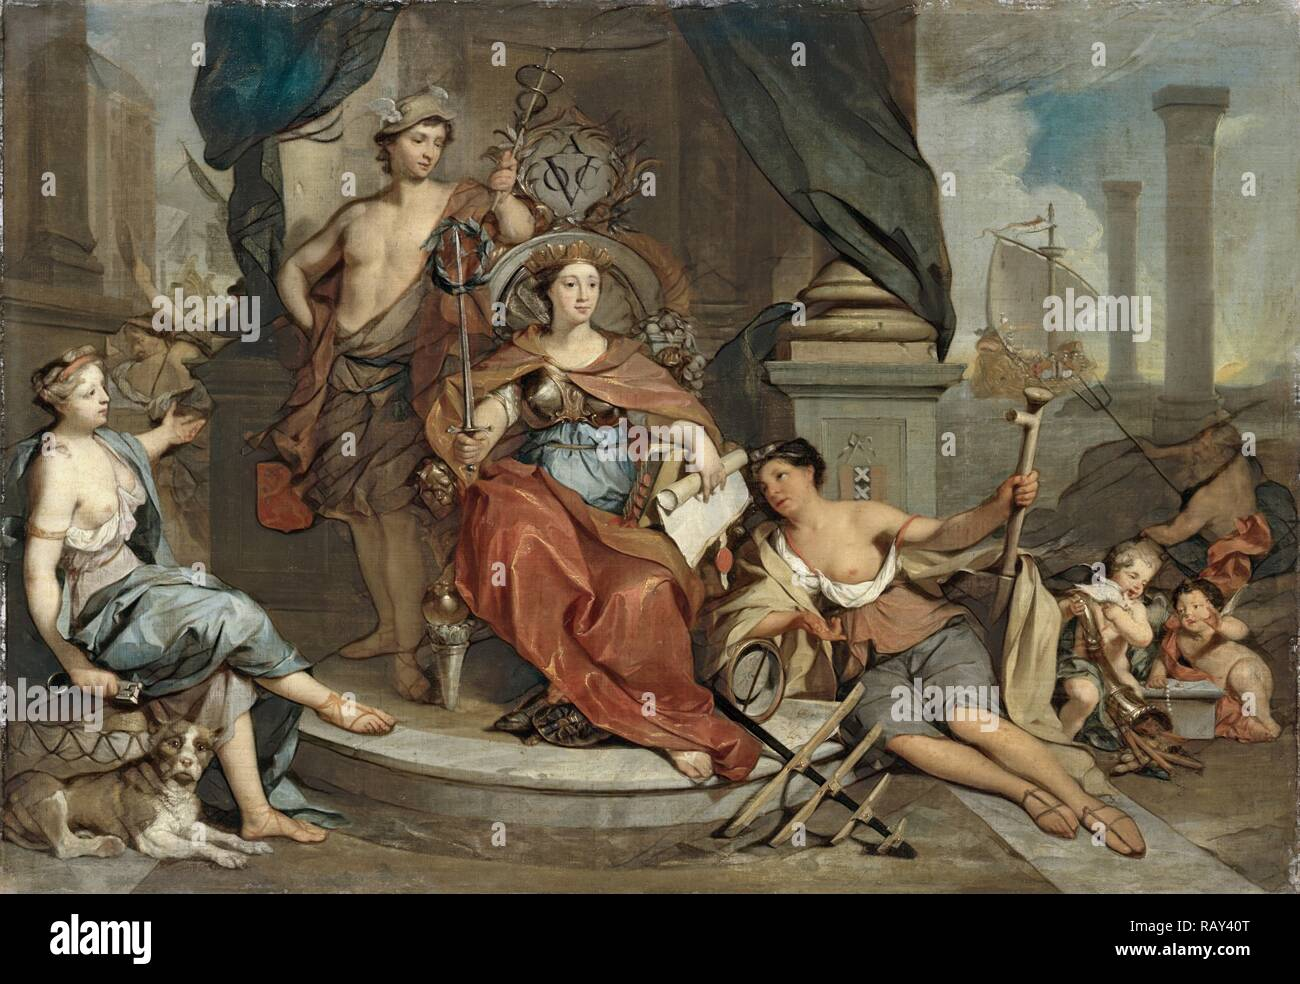 Apotheosis of the Dutch East India Company, Allegory of the Amsterdam Chamber of Commerce of the VOC, Nicolaas reimagined - Stock Image